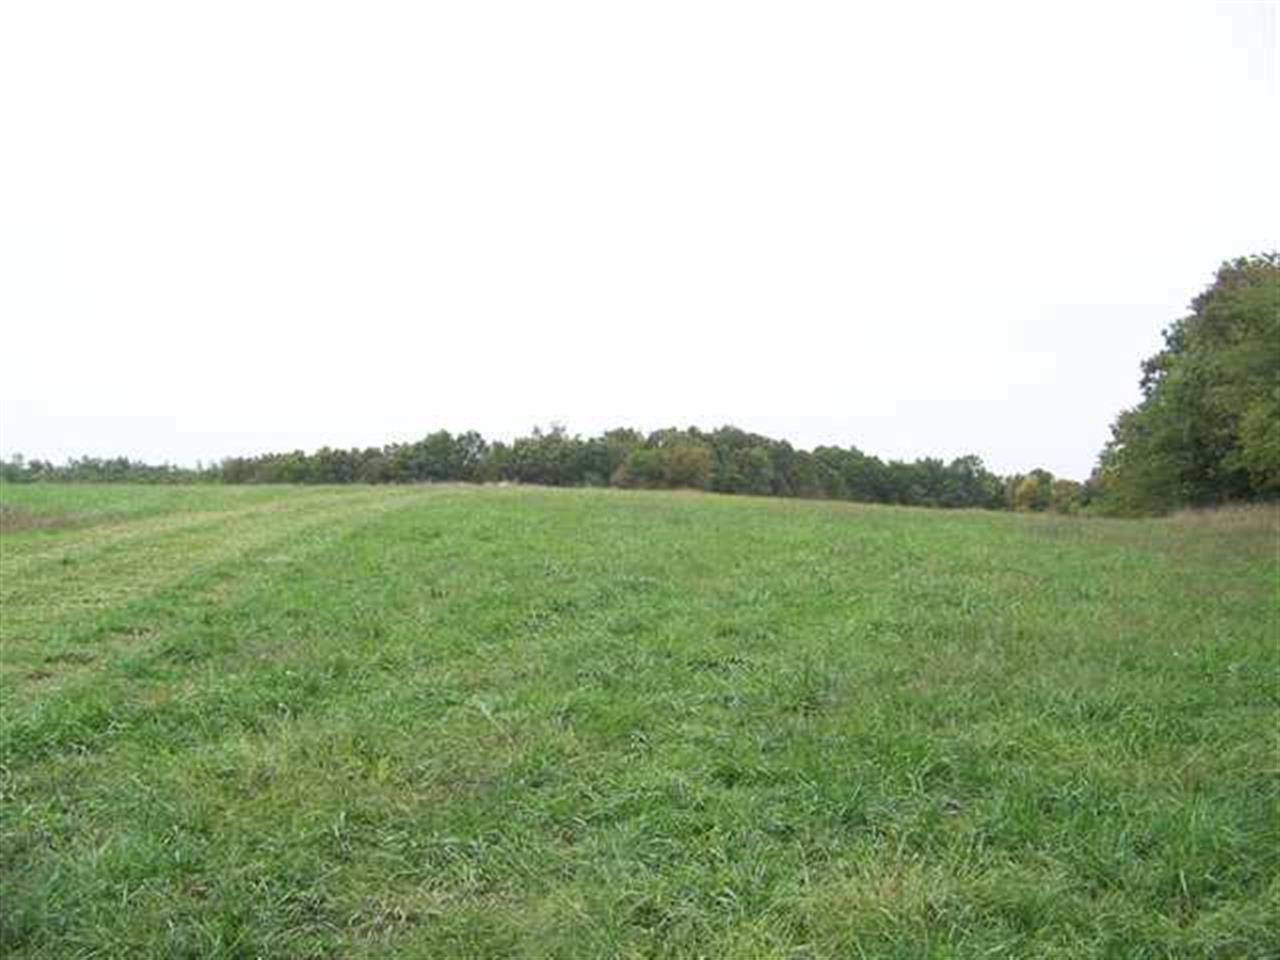 179 acres in Patton, Missouri